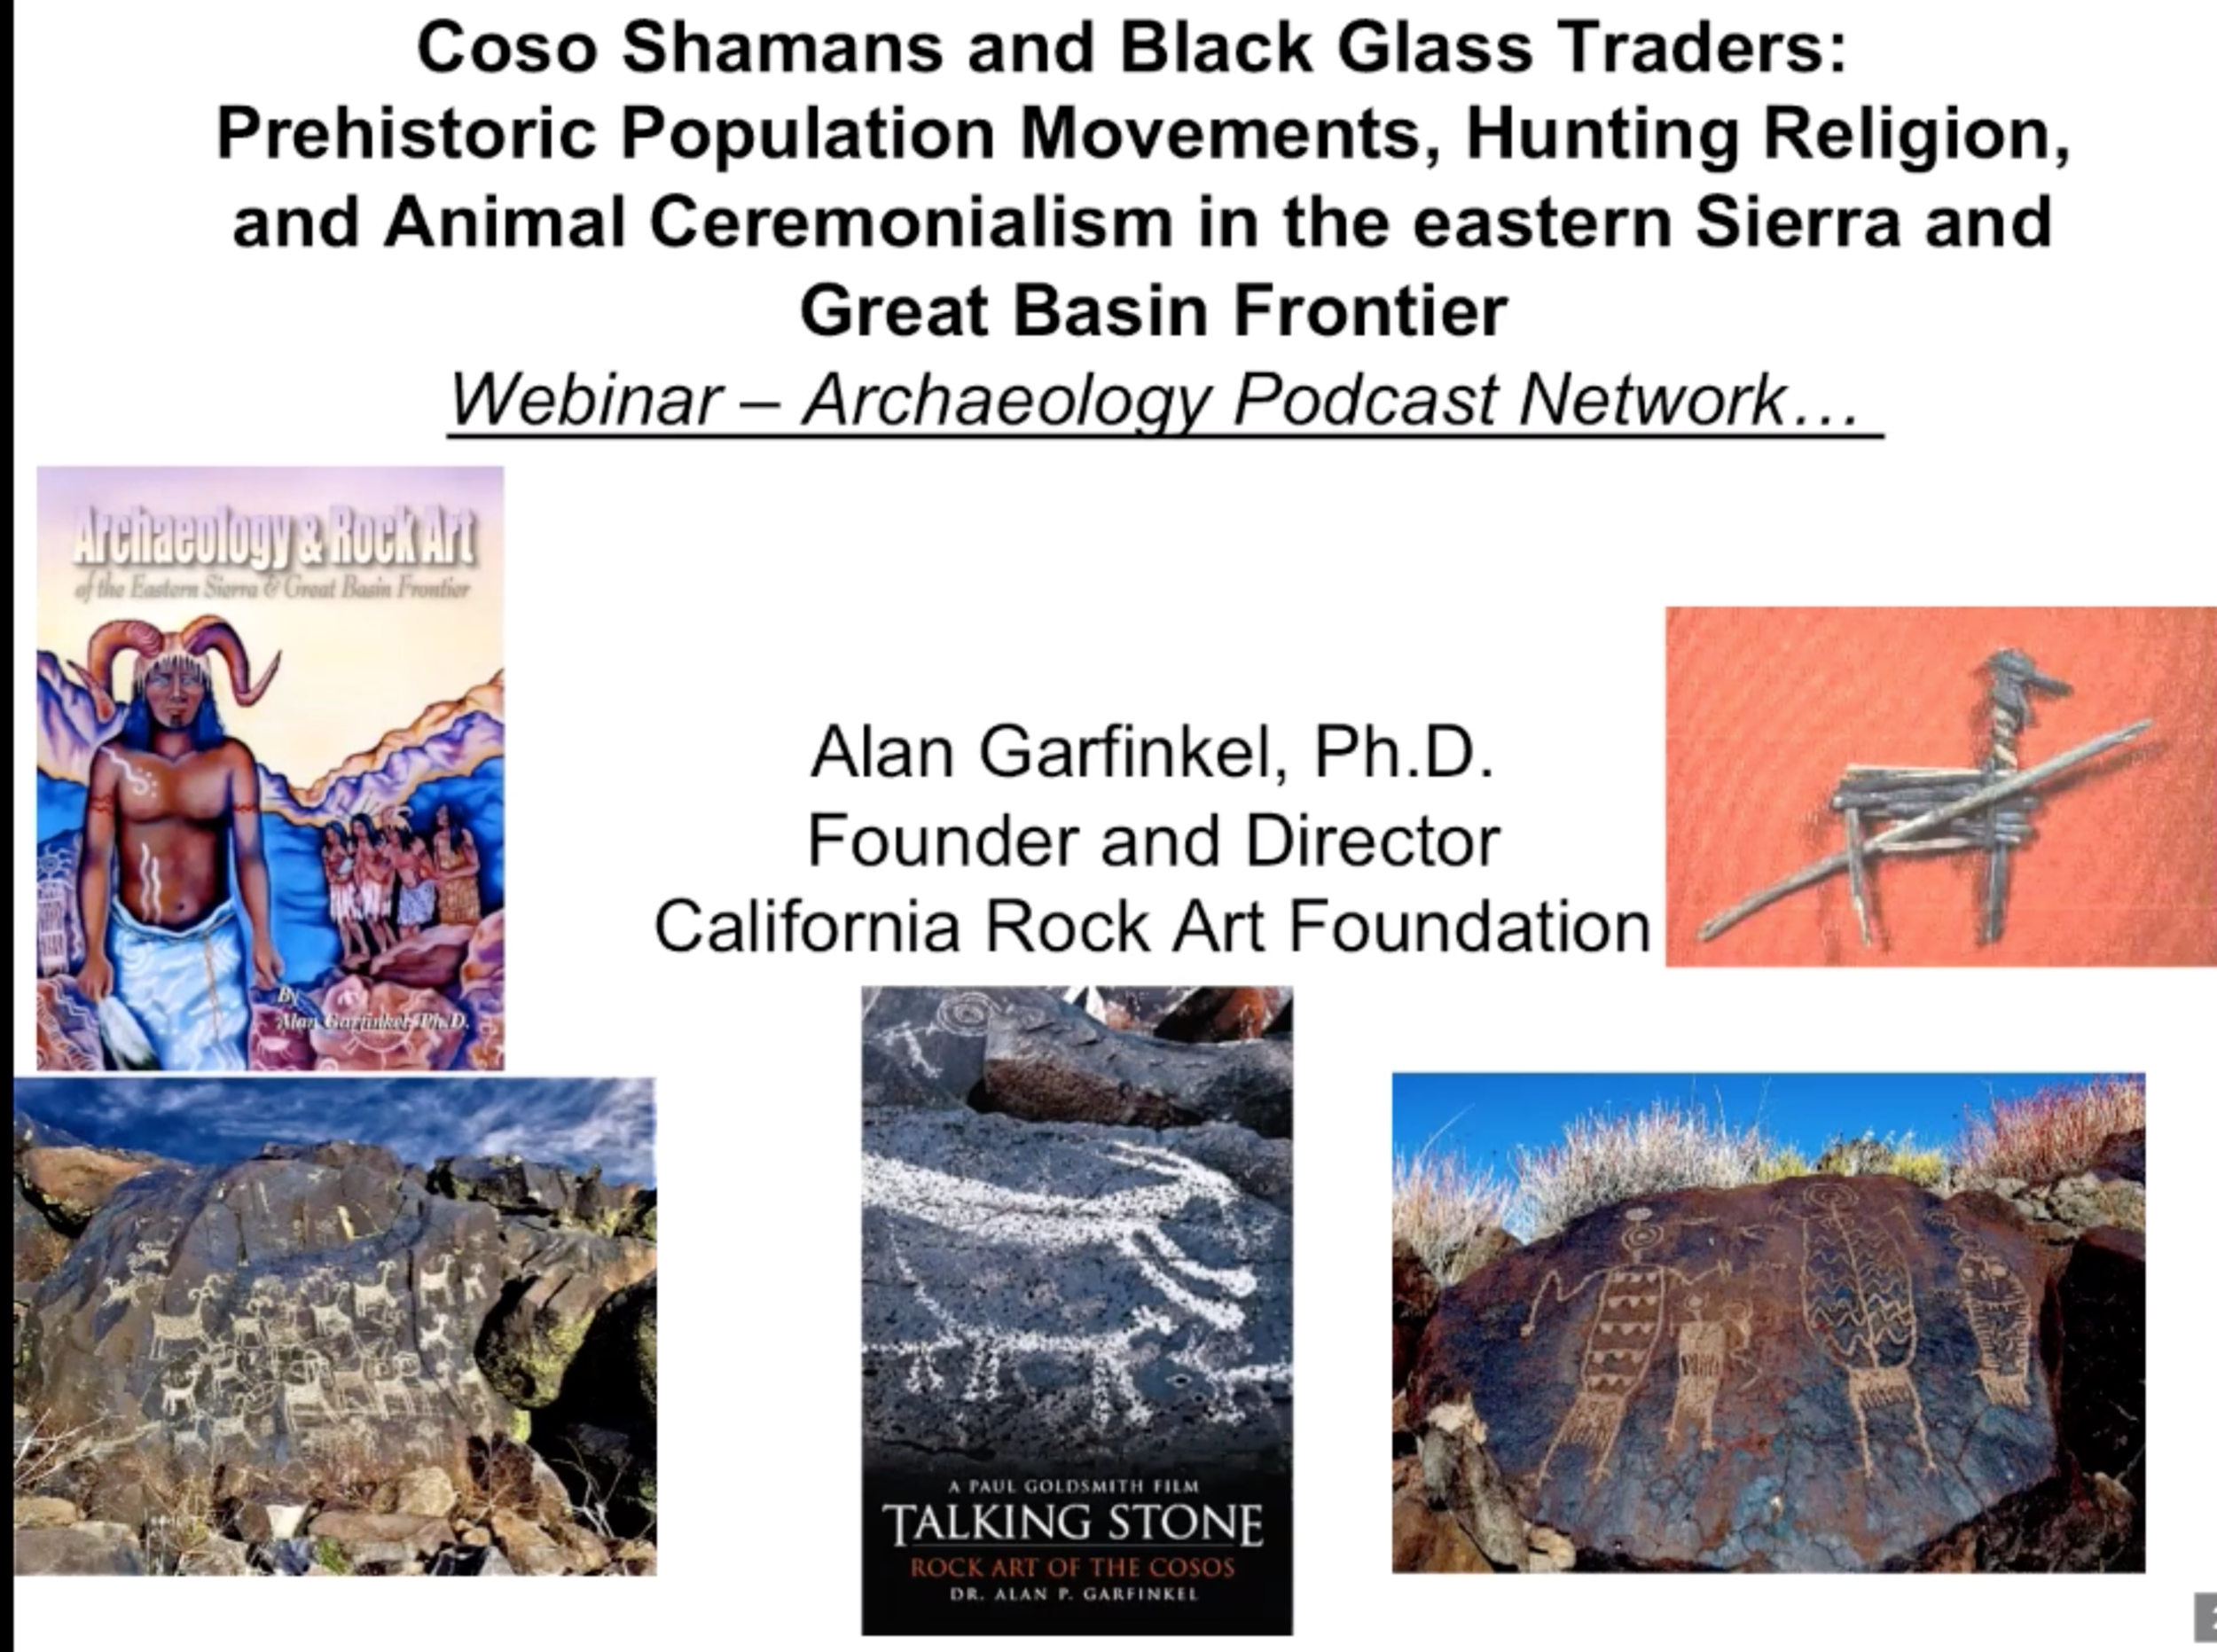 Coso Shamans and Black Glass Traders: Hunting Religion and Animal Ceremonialism in the Eastern Sierra and the Great Basin Frontier, Dr. Alan Garfinkel   This presentation provides a unique insiders' view of breakthrough research on Coso rock art and hunter gatherer religious metaphor.  Through compelling visual aids and a dynamic lecture you will personally connect with one of most recognized and scholarly researchers known globally for his research on world class Coso rock art.